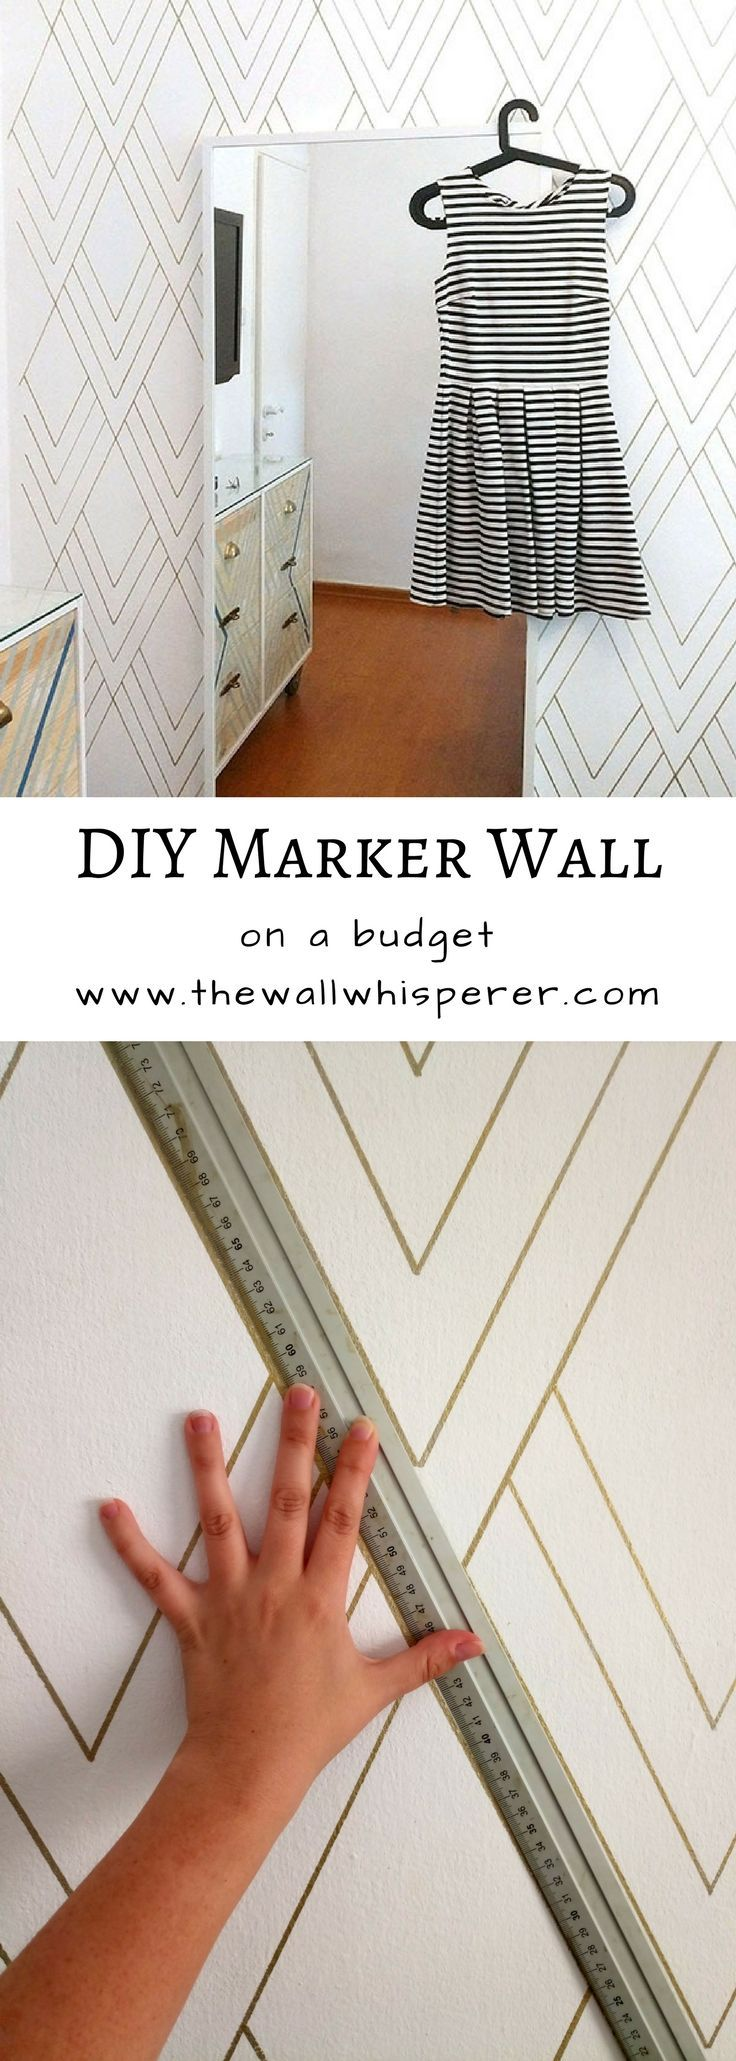 DIY accent wall, sharpie wall. On a budget cheap affordable room makeover.